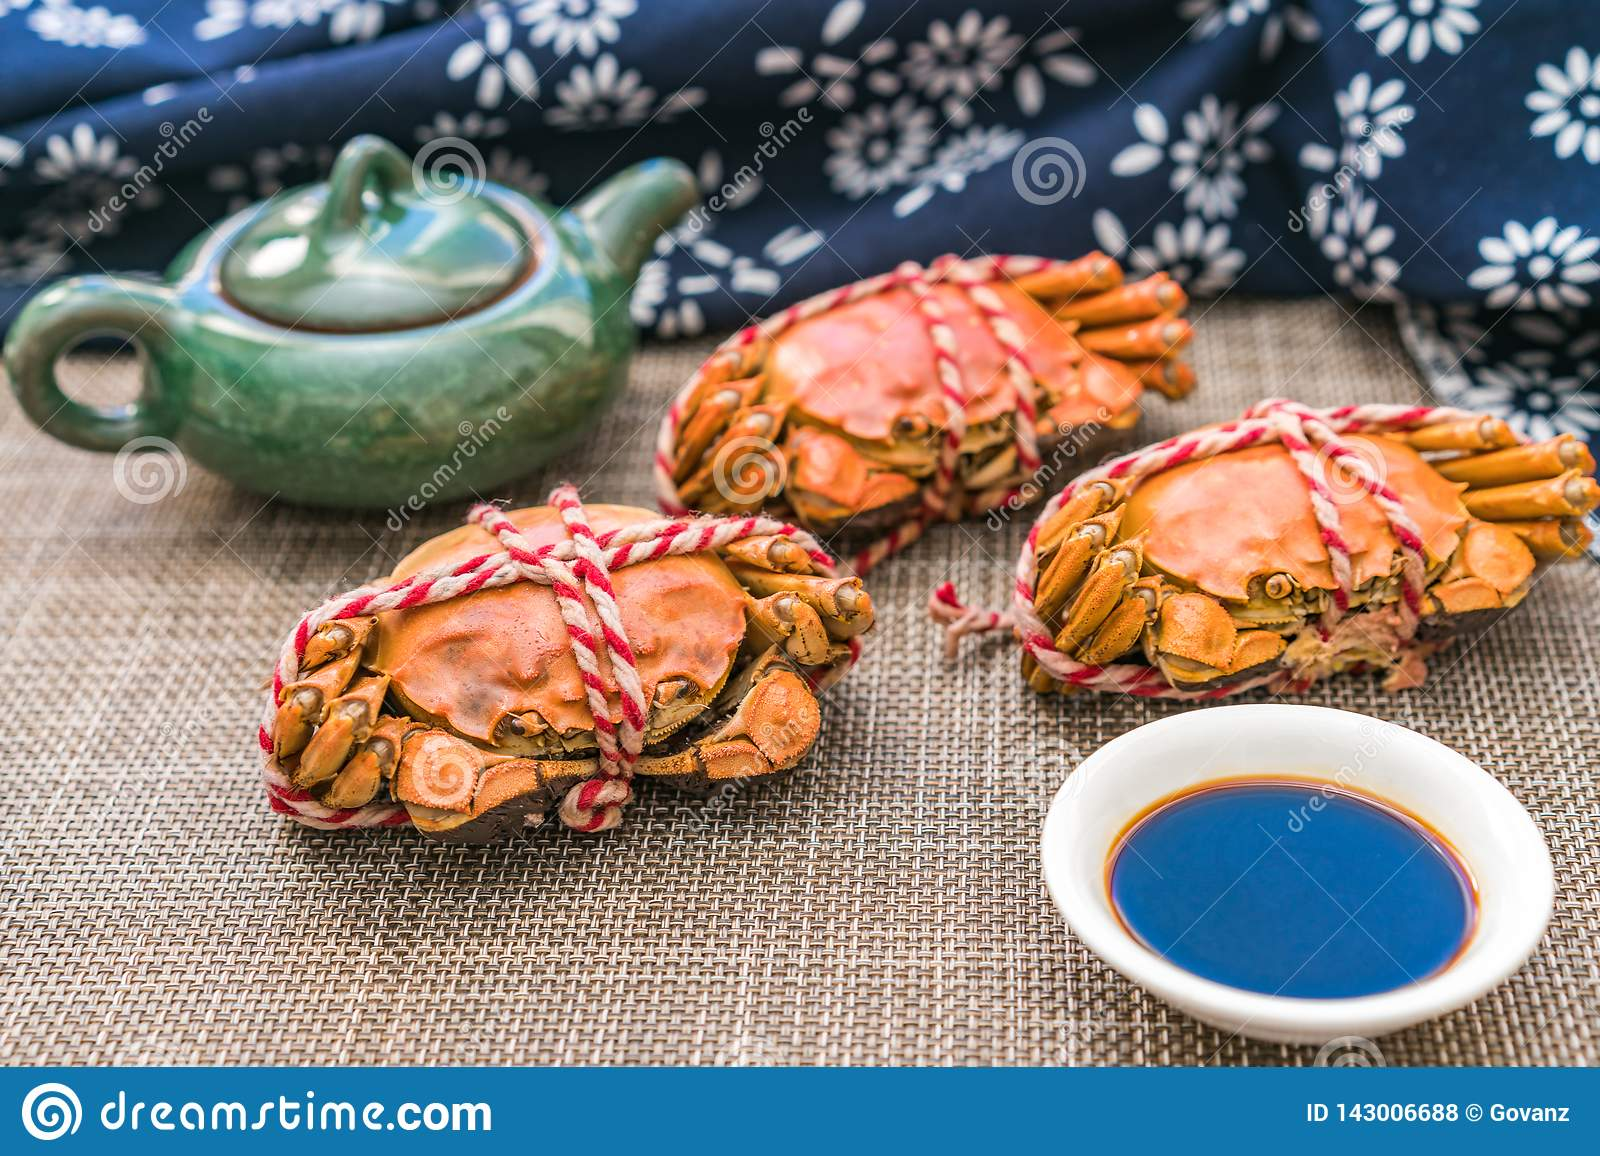 Steamed crab, a delicacy of Chongyang Festival in China